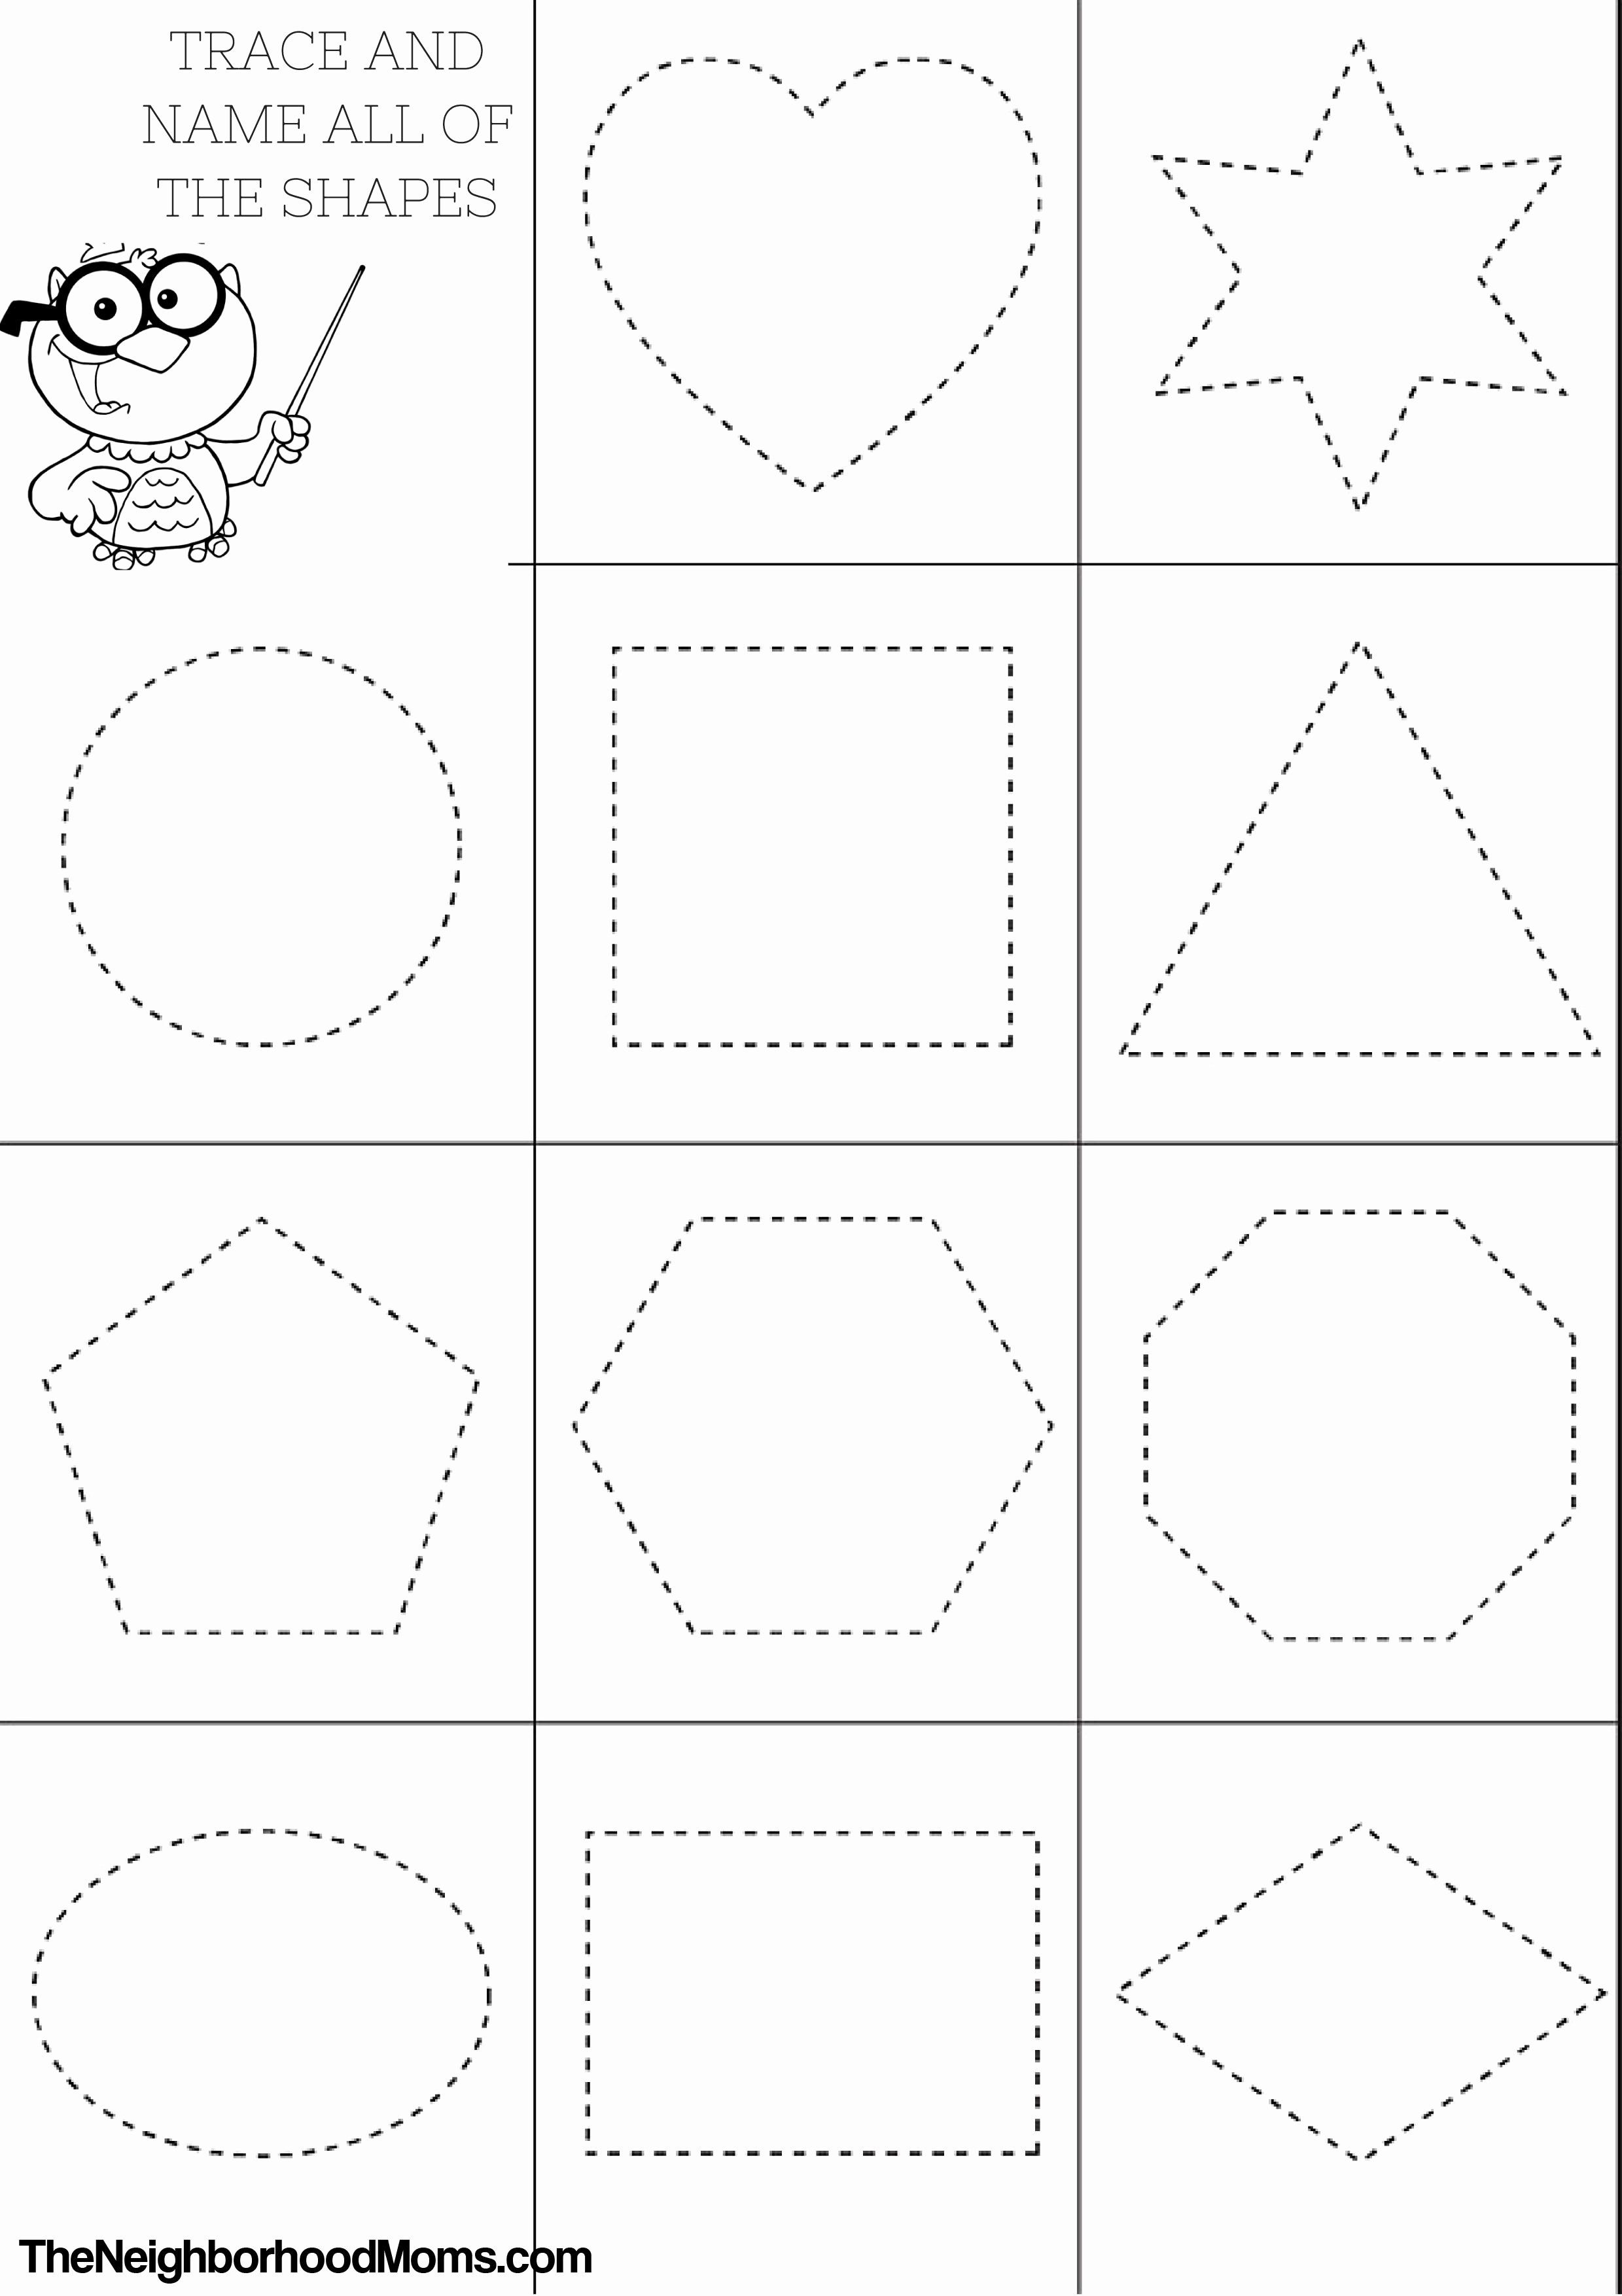 Simple Shapes Coloring Pages Fresh Coloring Pages Amazing